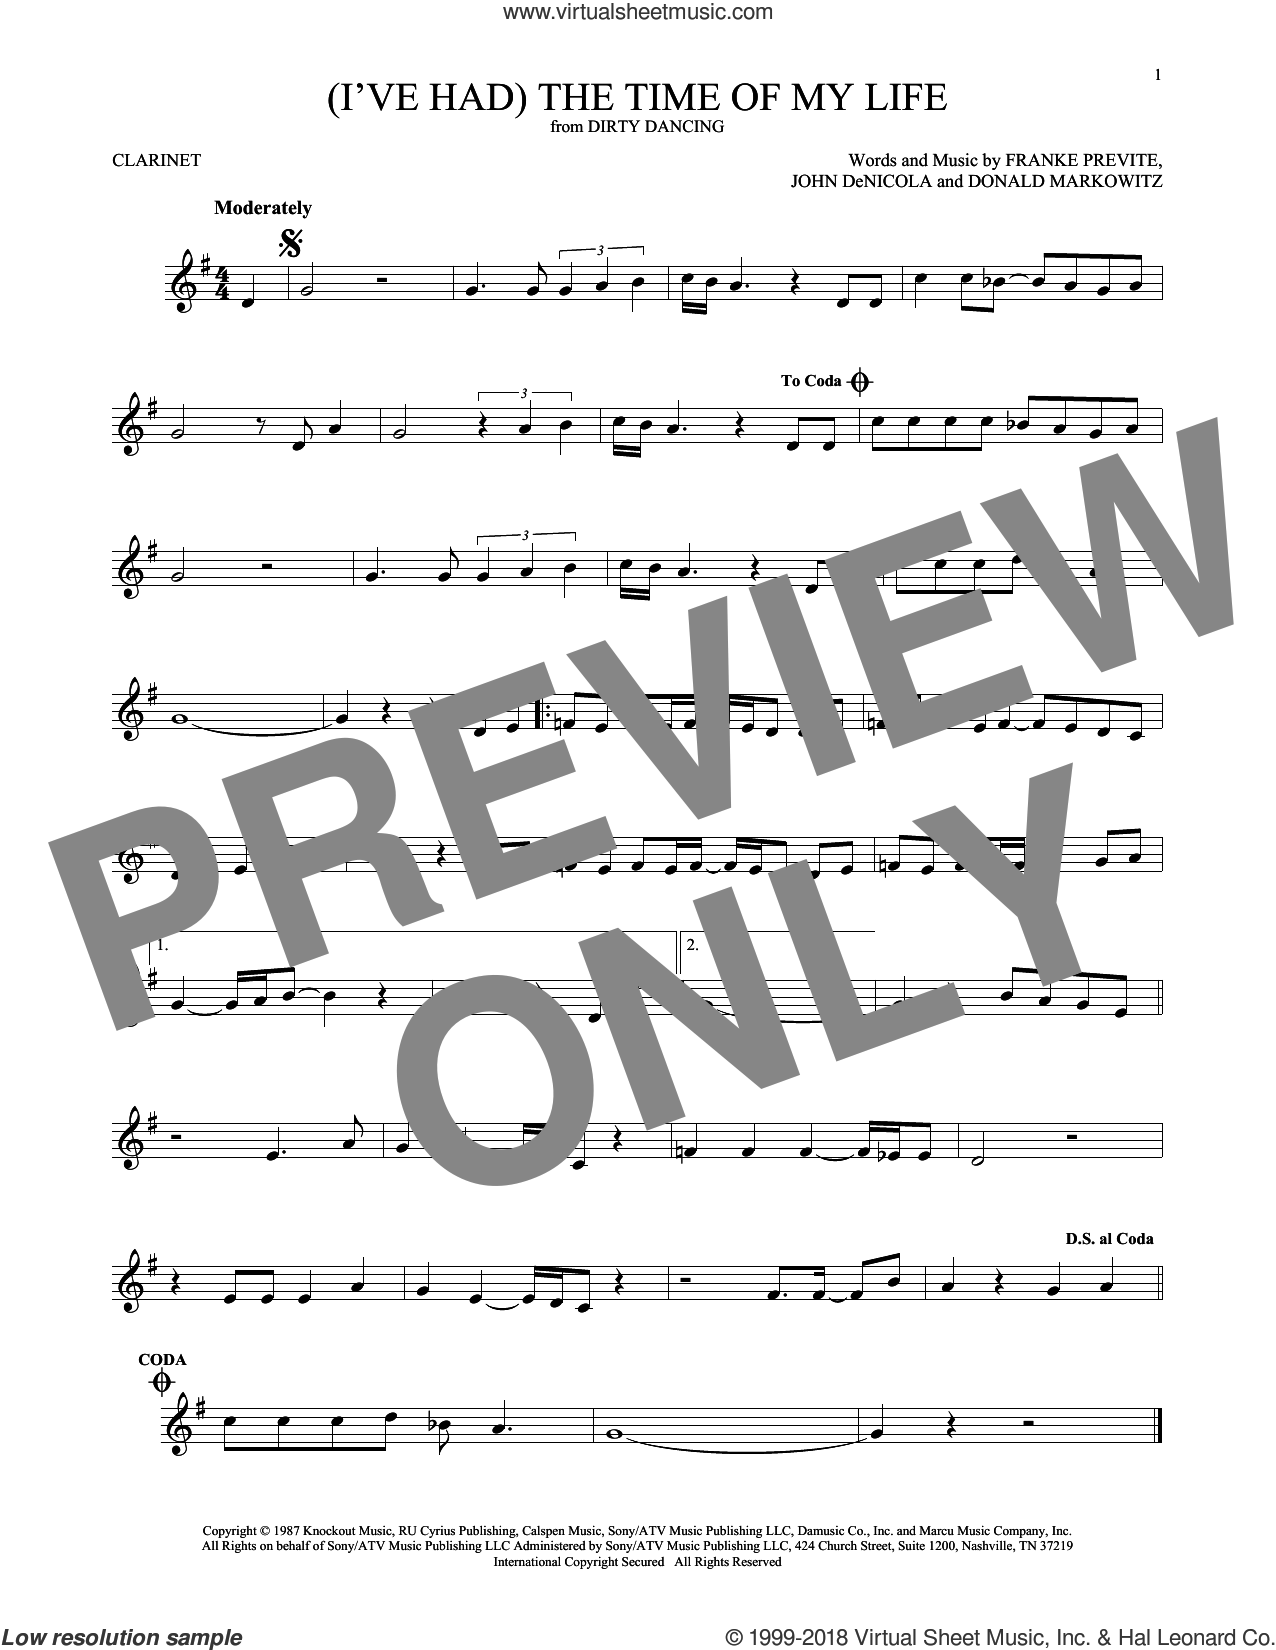 (I've Had) The Time Of My Life sheet music for clarinet solo by Bill Medley & Jennifer Warnes, Donald Markowitz, Franke Previte and John DeNicola, intermediate skill level